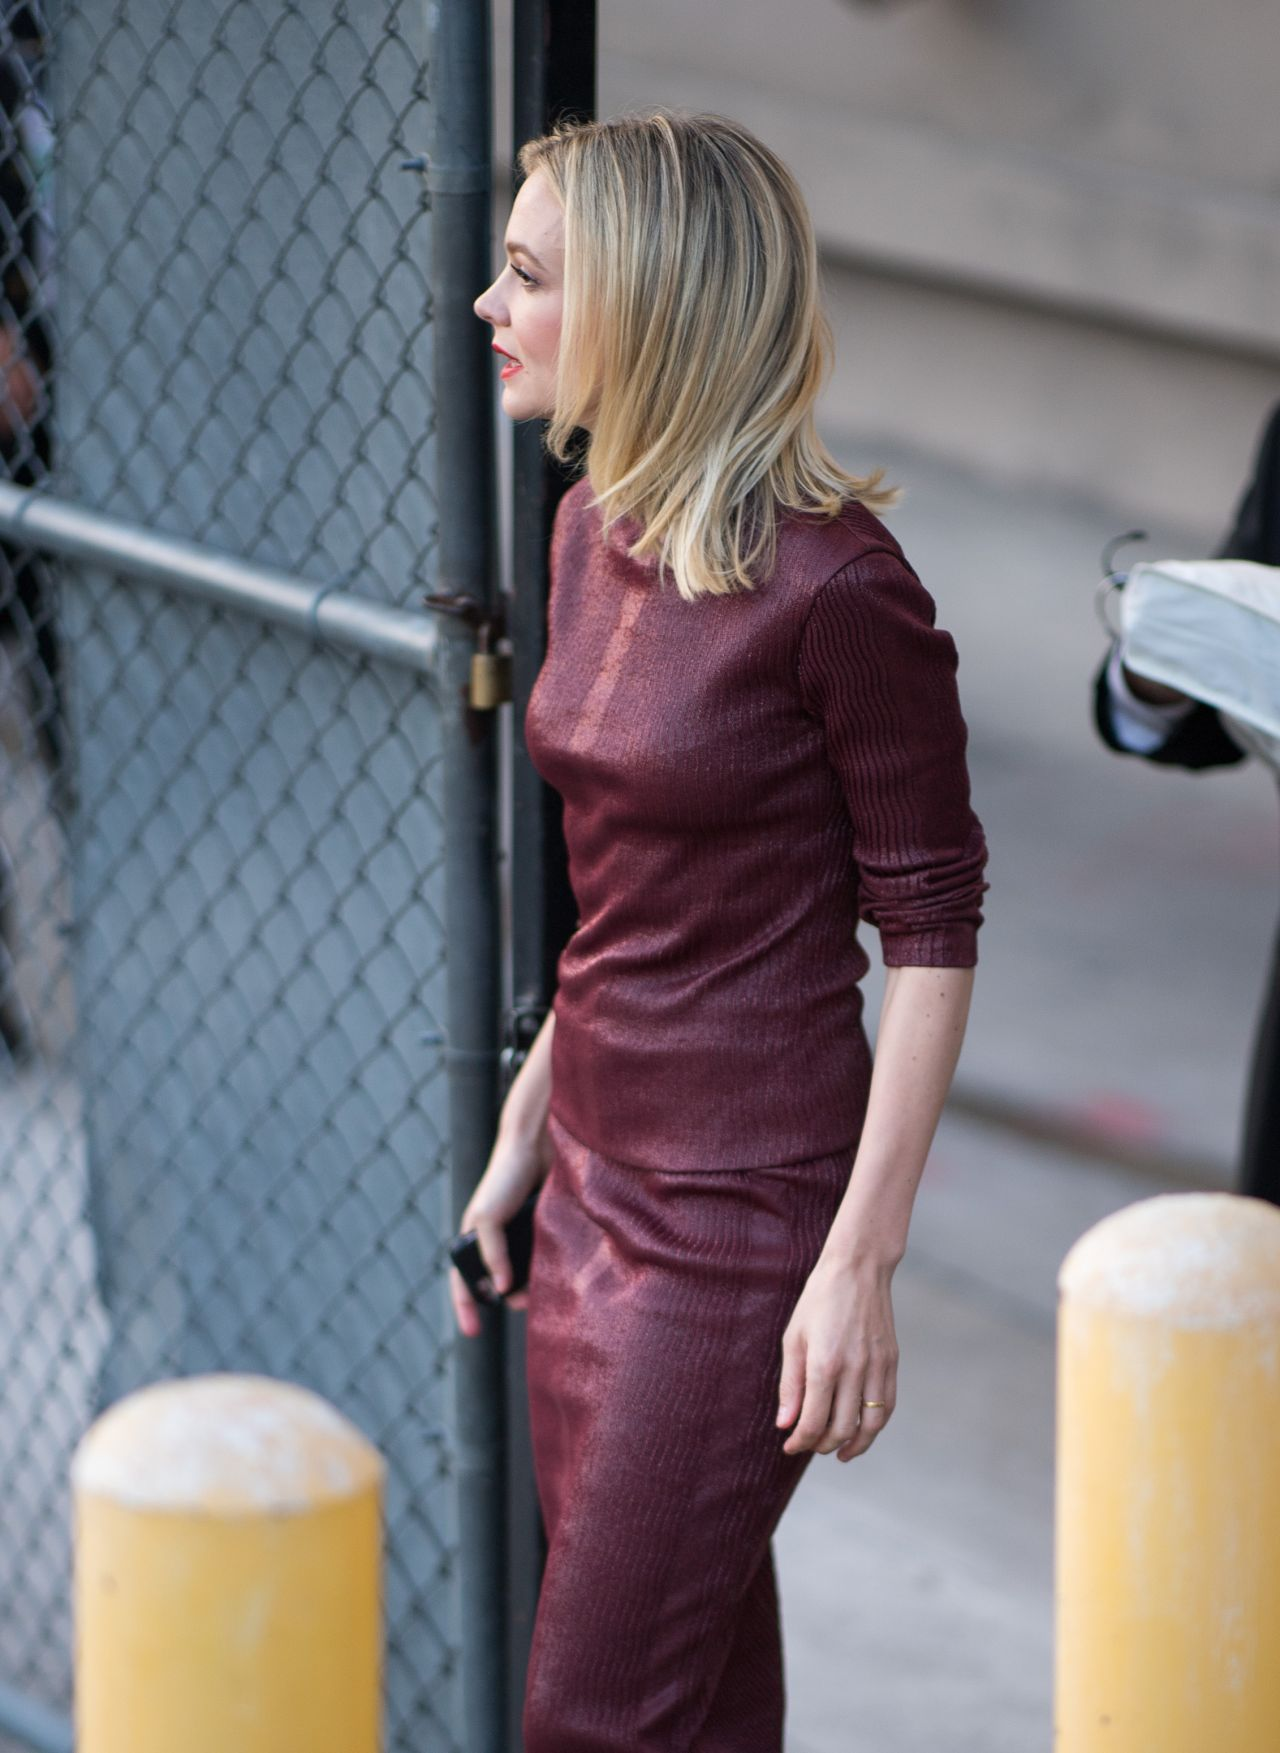 carey mulligan outside jimmy kimmel live in la 10242018